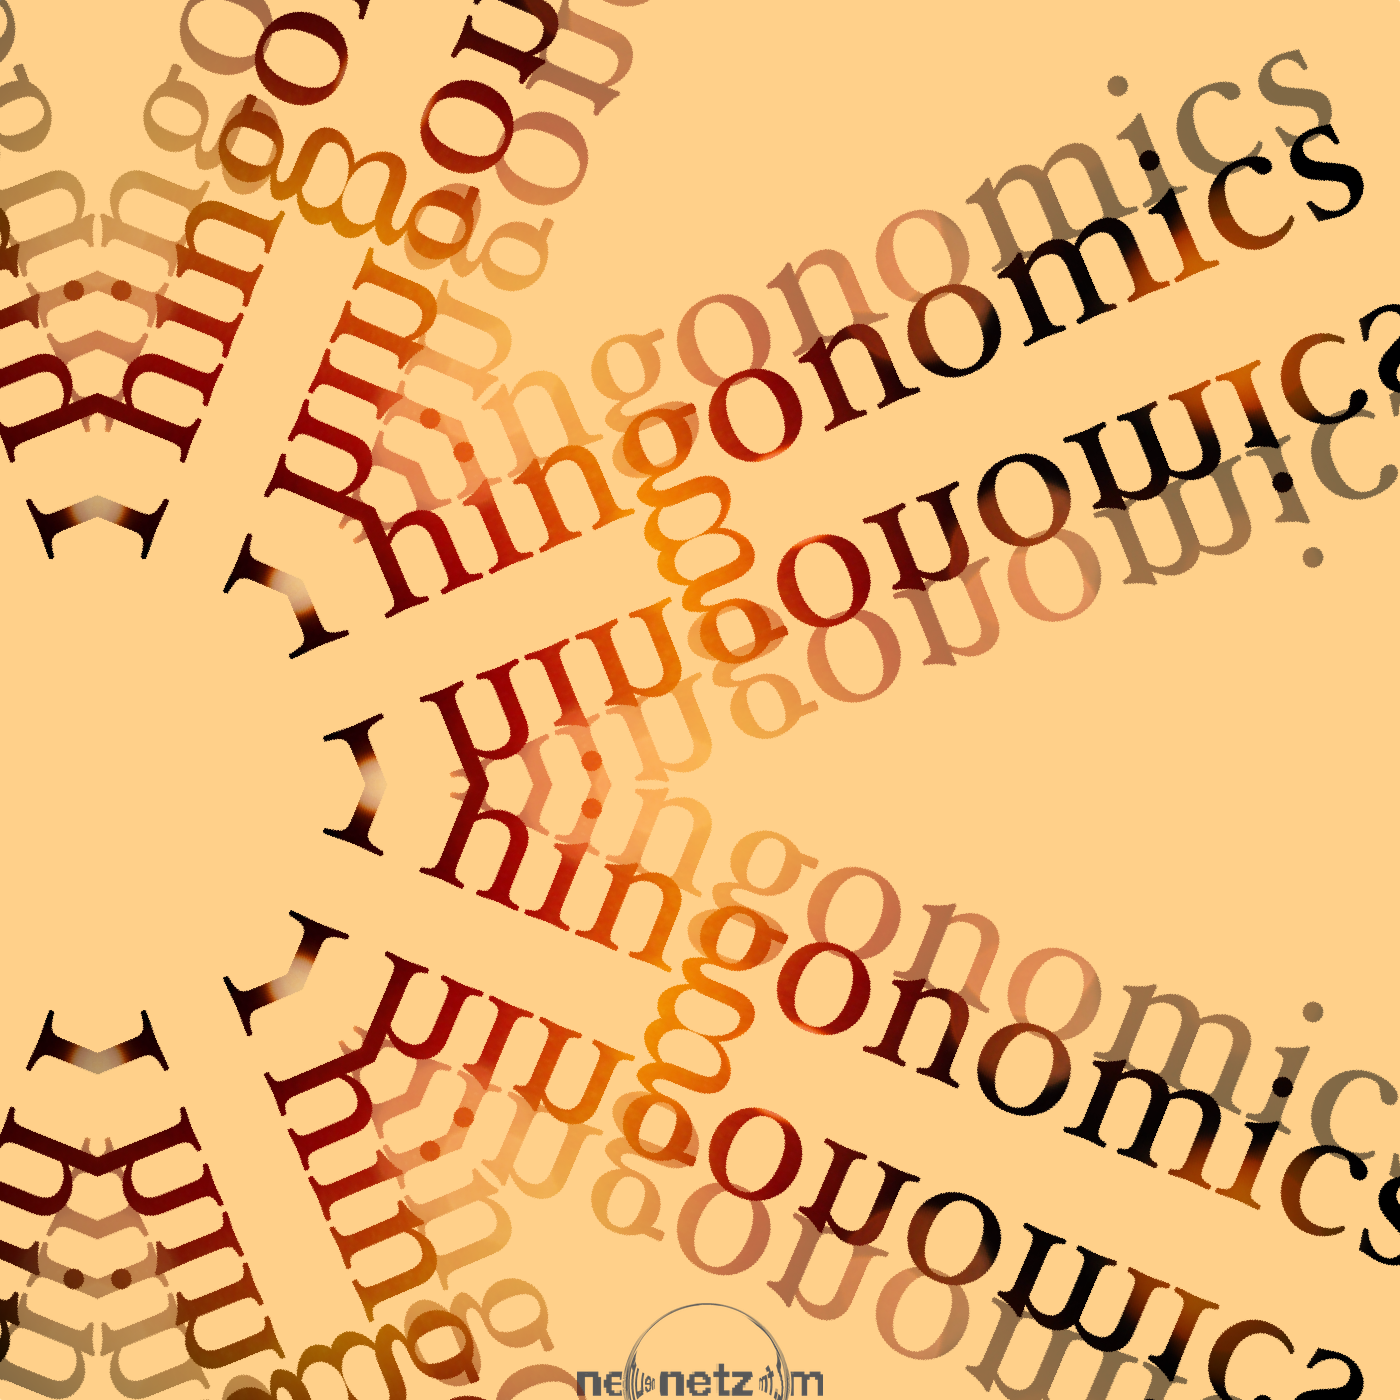 Logo von Thingonomics